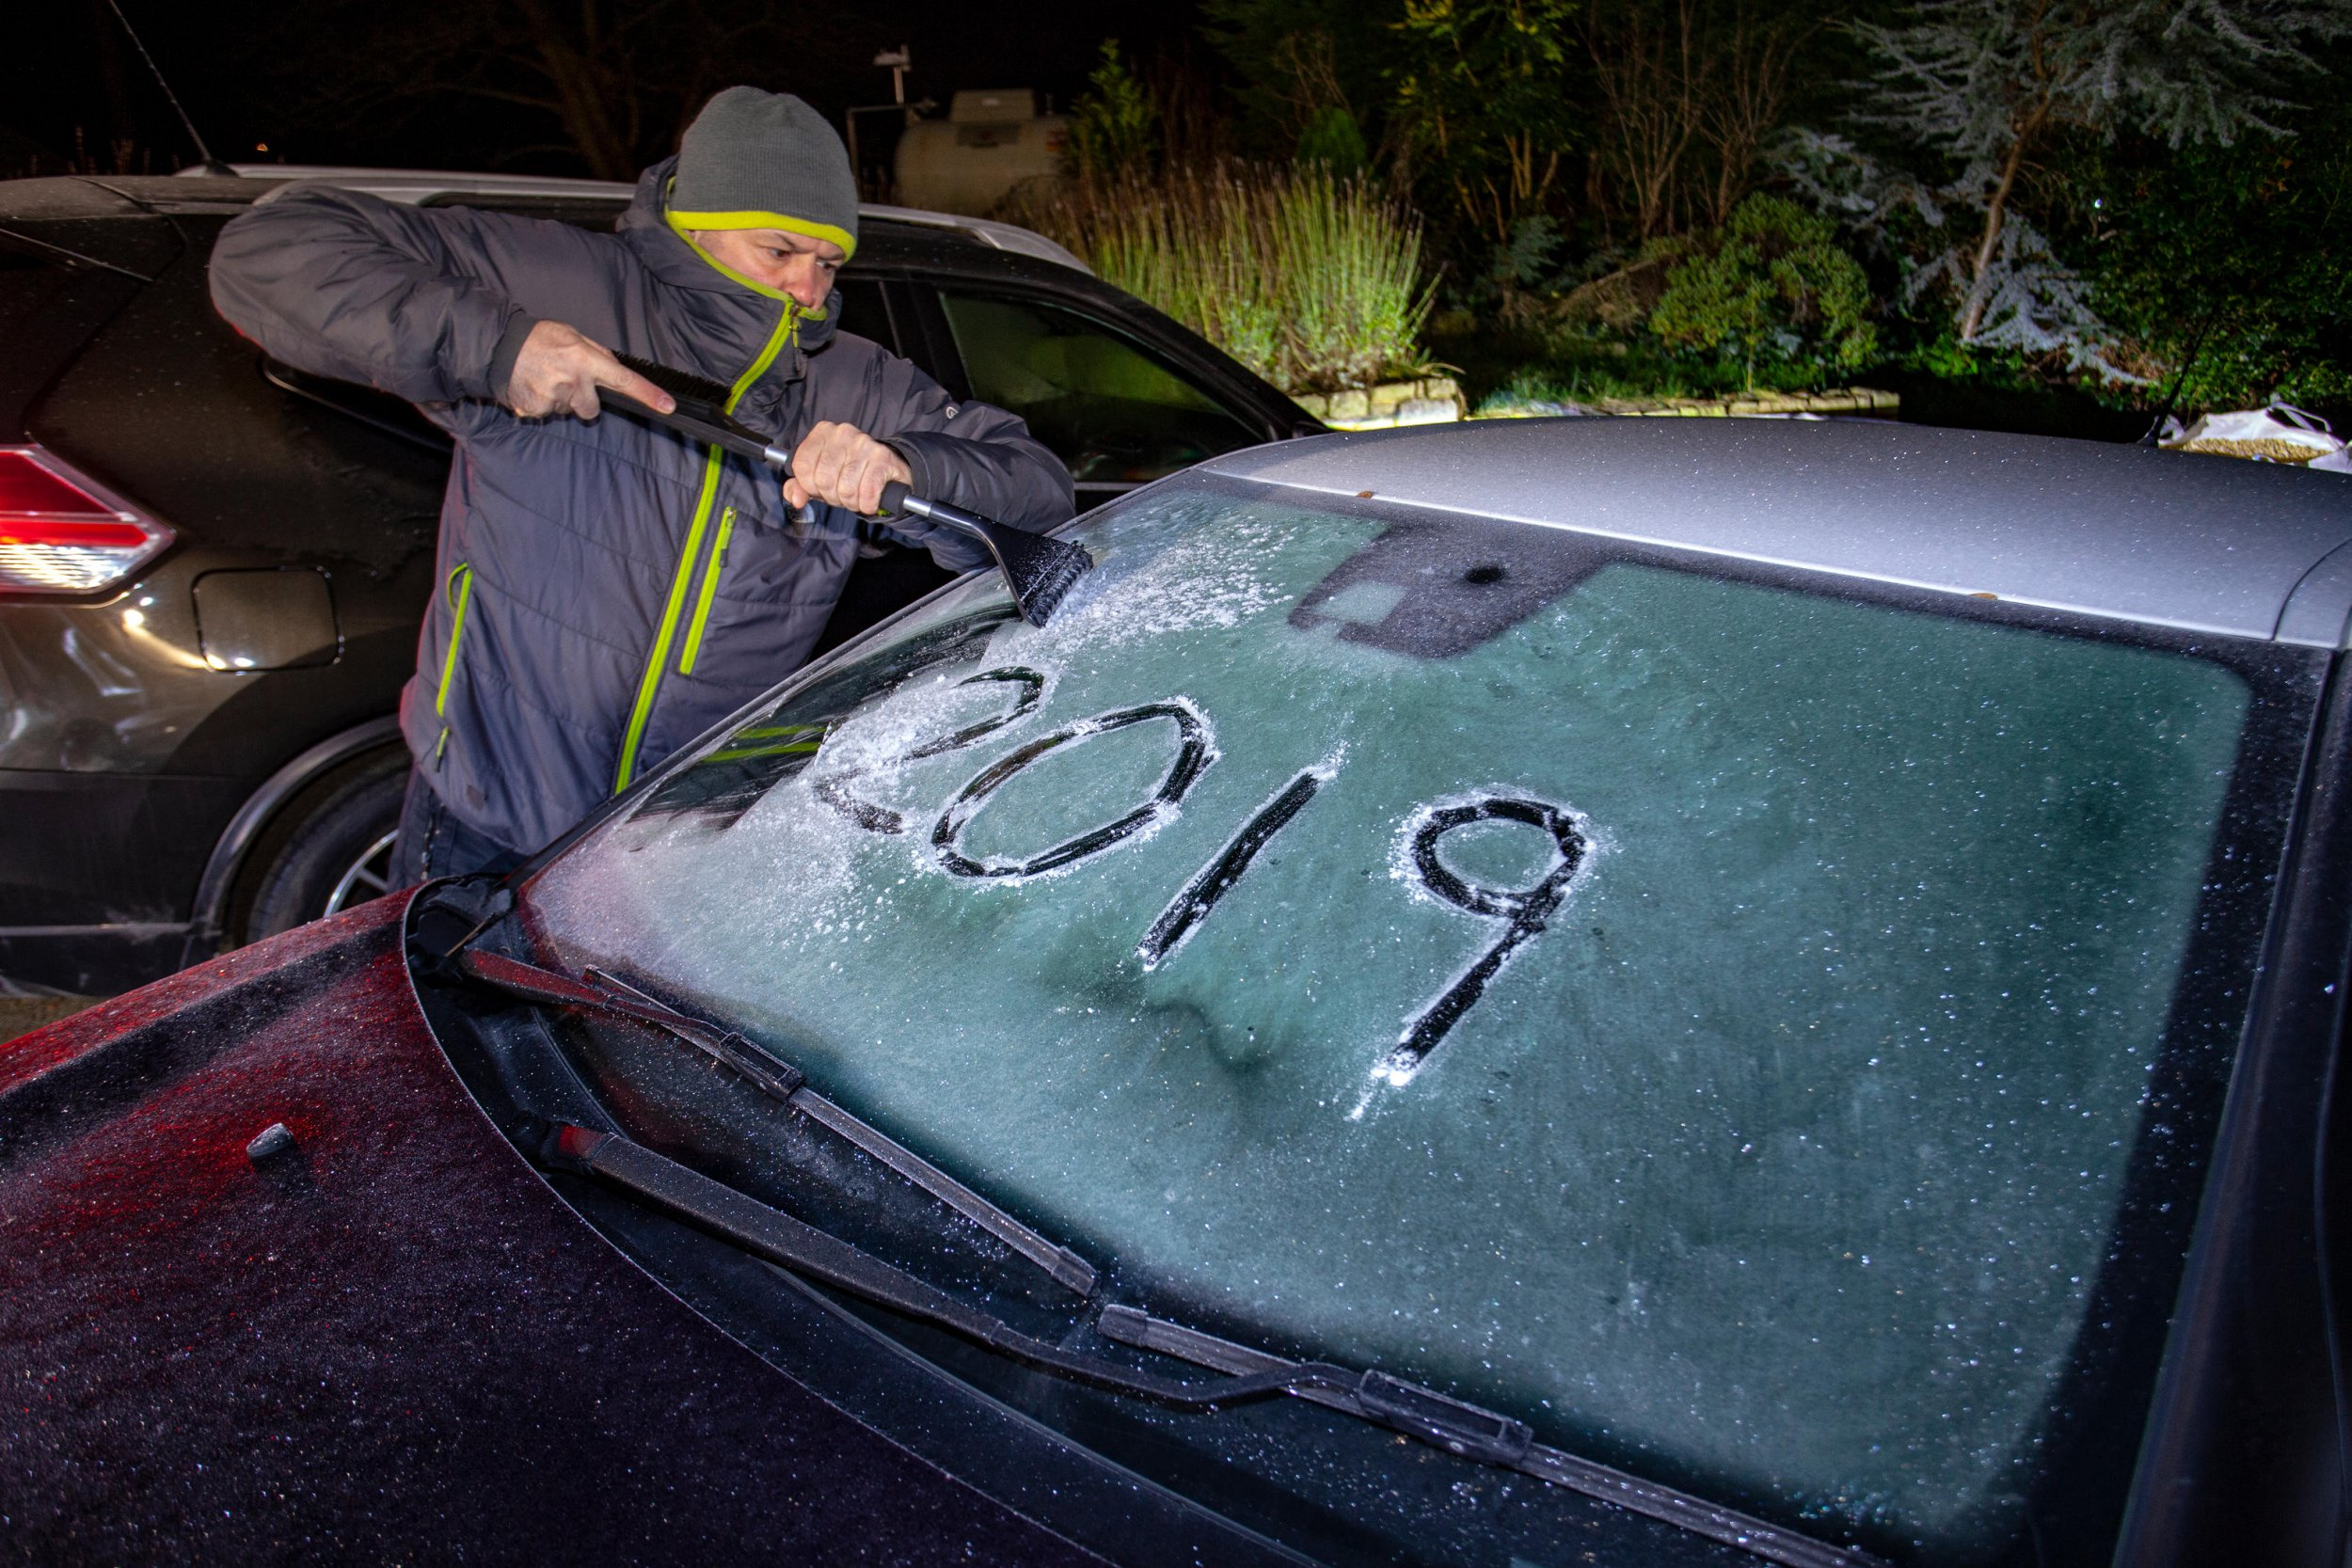 Alamy Live News. RA6BKN Lixwm, North Wales UK. 2nd Jan, 2019. UK Weather: A severe drop in temperatures overnight and the first frost of 2019 as a motoroist begins to clear a windscreen of overnight frost in the village of Lixwm, Wales Credit: DGDImages/Alamy Live News This is an Alamy Live News image and may not be part of your current Alamy deal . If you are unsure, please contact our sales team to check.